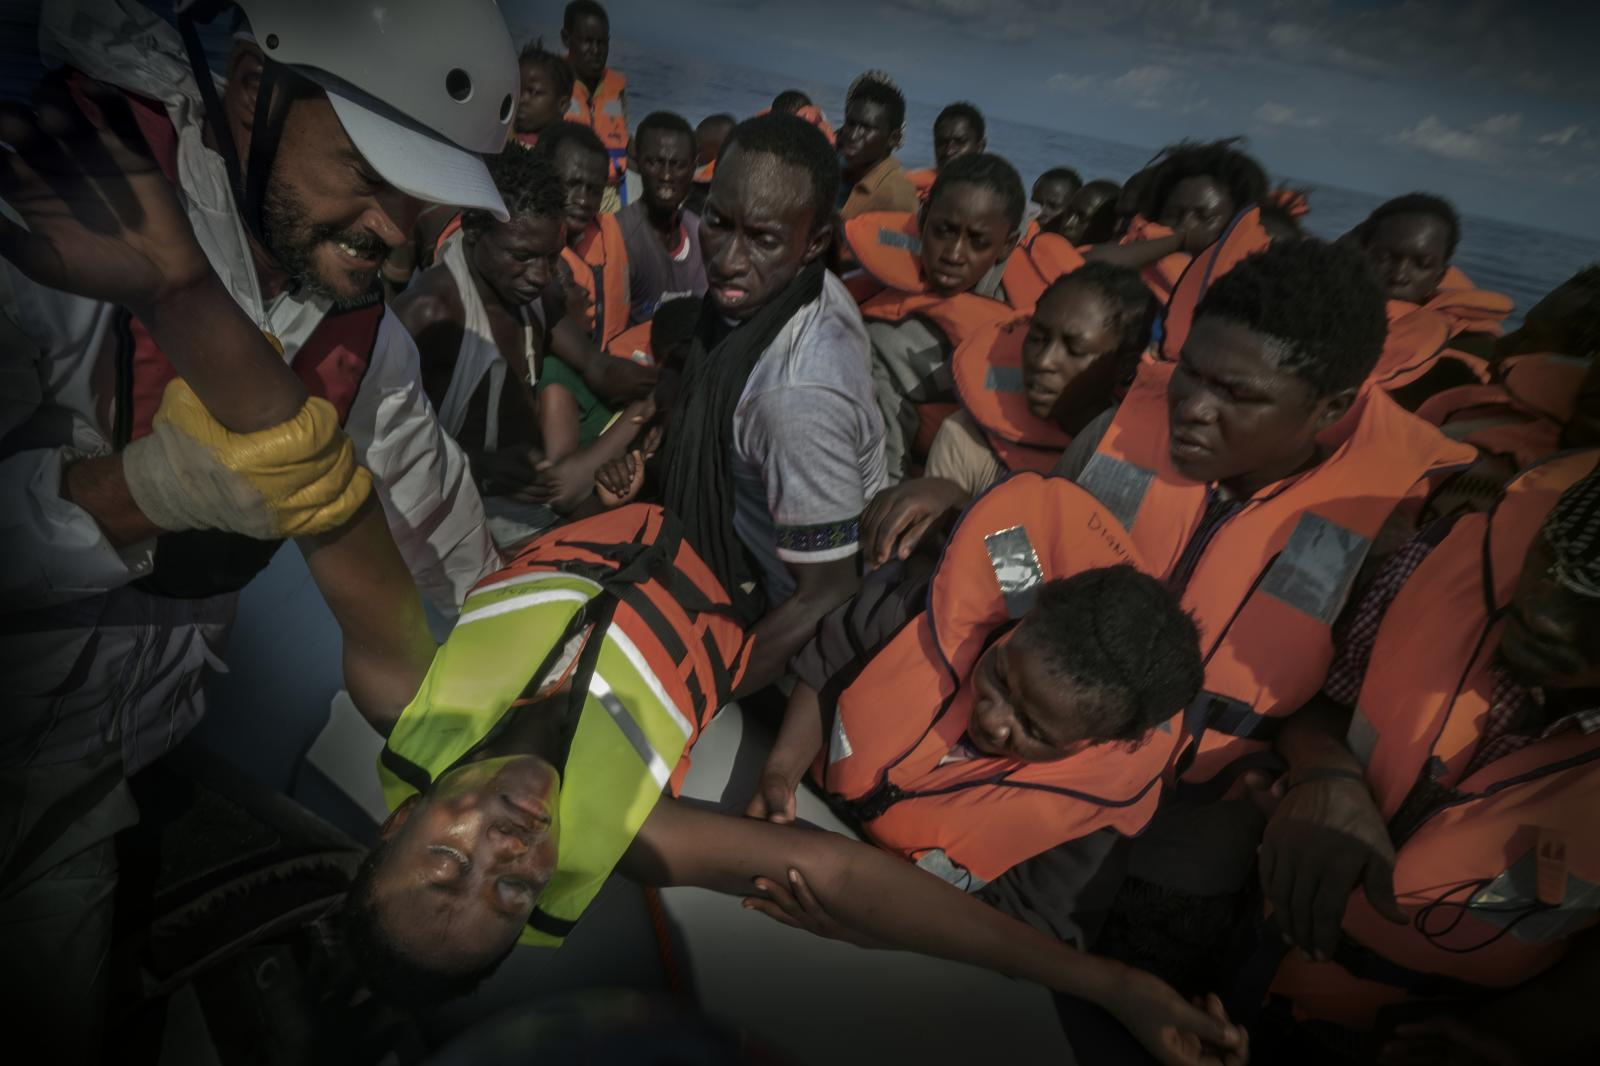 A member of the NGO Doctors Without Borders carries a refugee and migrant youth who has fainted aboard an inflatable boat during a rescue operation on the ship Dignity 1 on the Mediterranean Sea, off the coast of Libya. 373 migrants (from countries such as Nigeria, Ivory Coast, Sierra Leone, Mali and Niger), including 62 women and 10 children, were rescued in international waters off the shores of Libya.